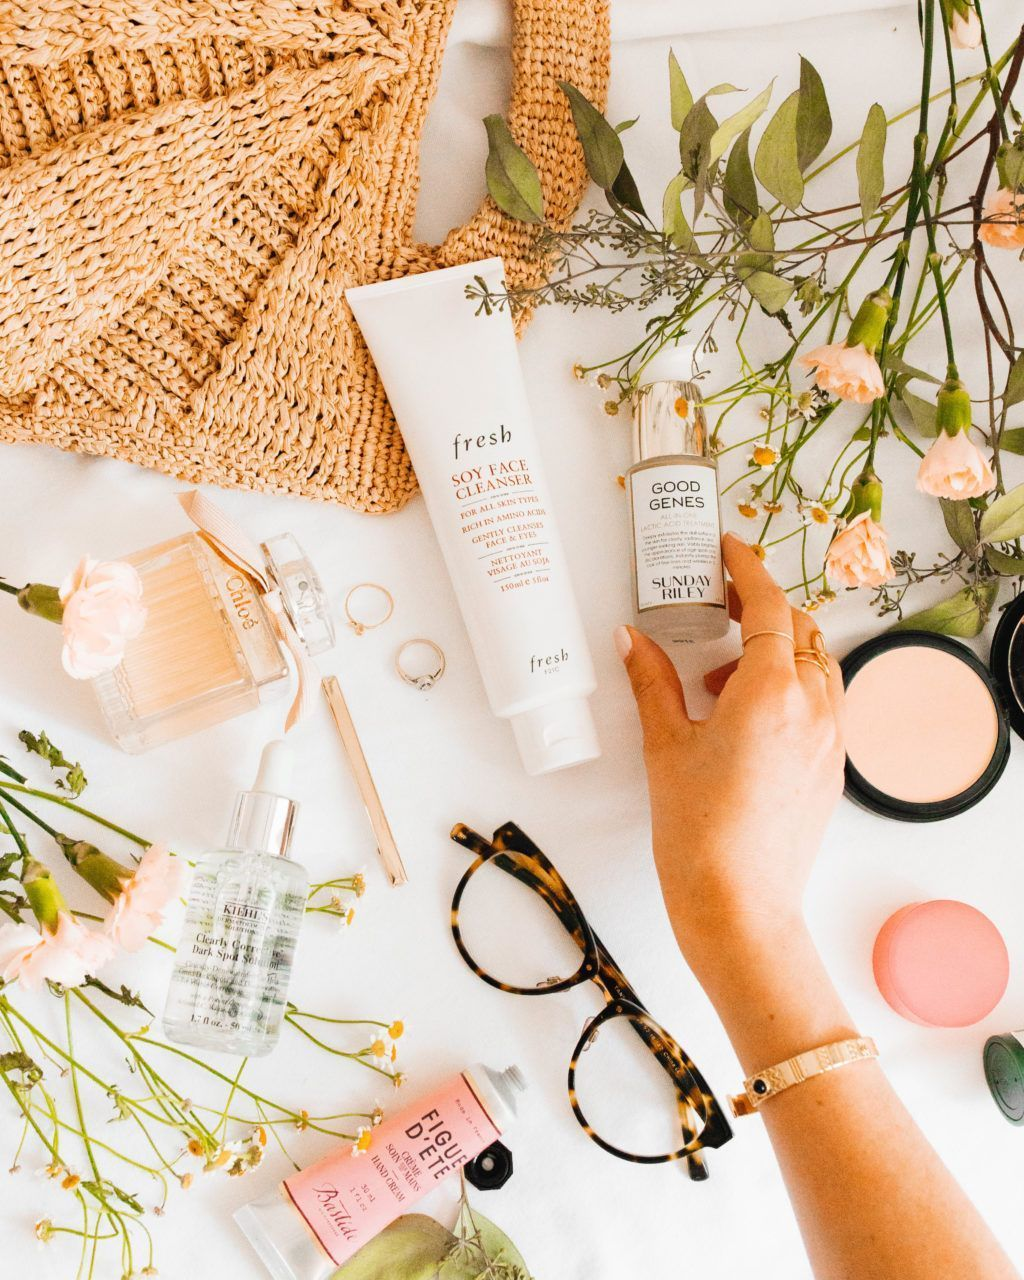 My updated skincare routine clean products for acne prone